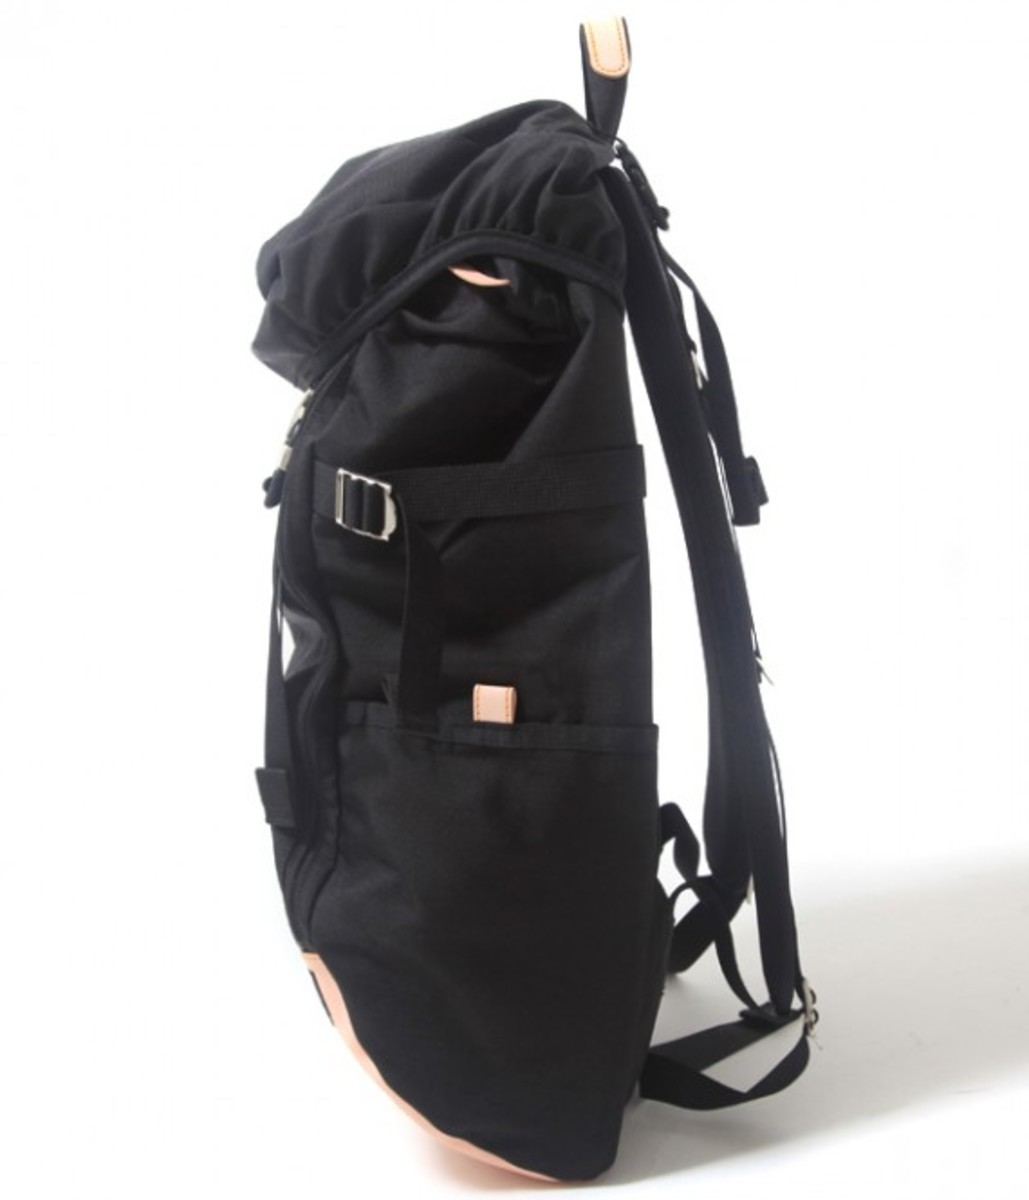 Vegetable Tanned Nylon Ruck Sack 2